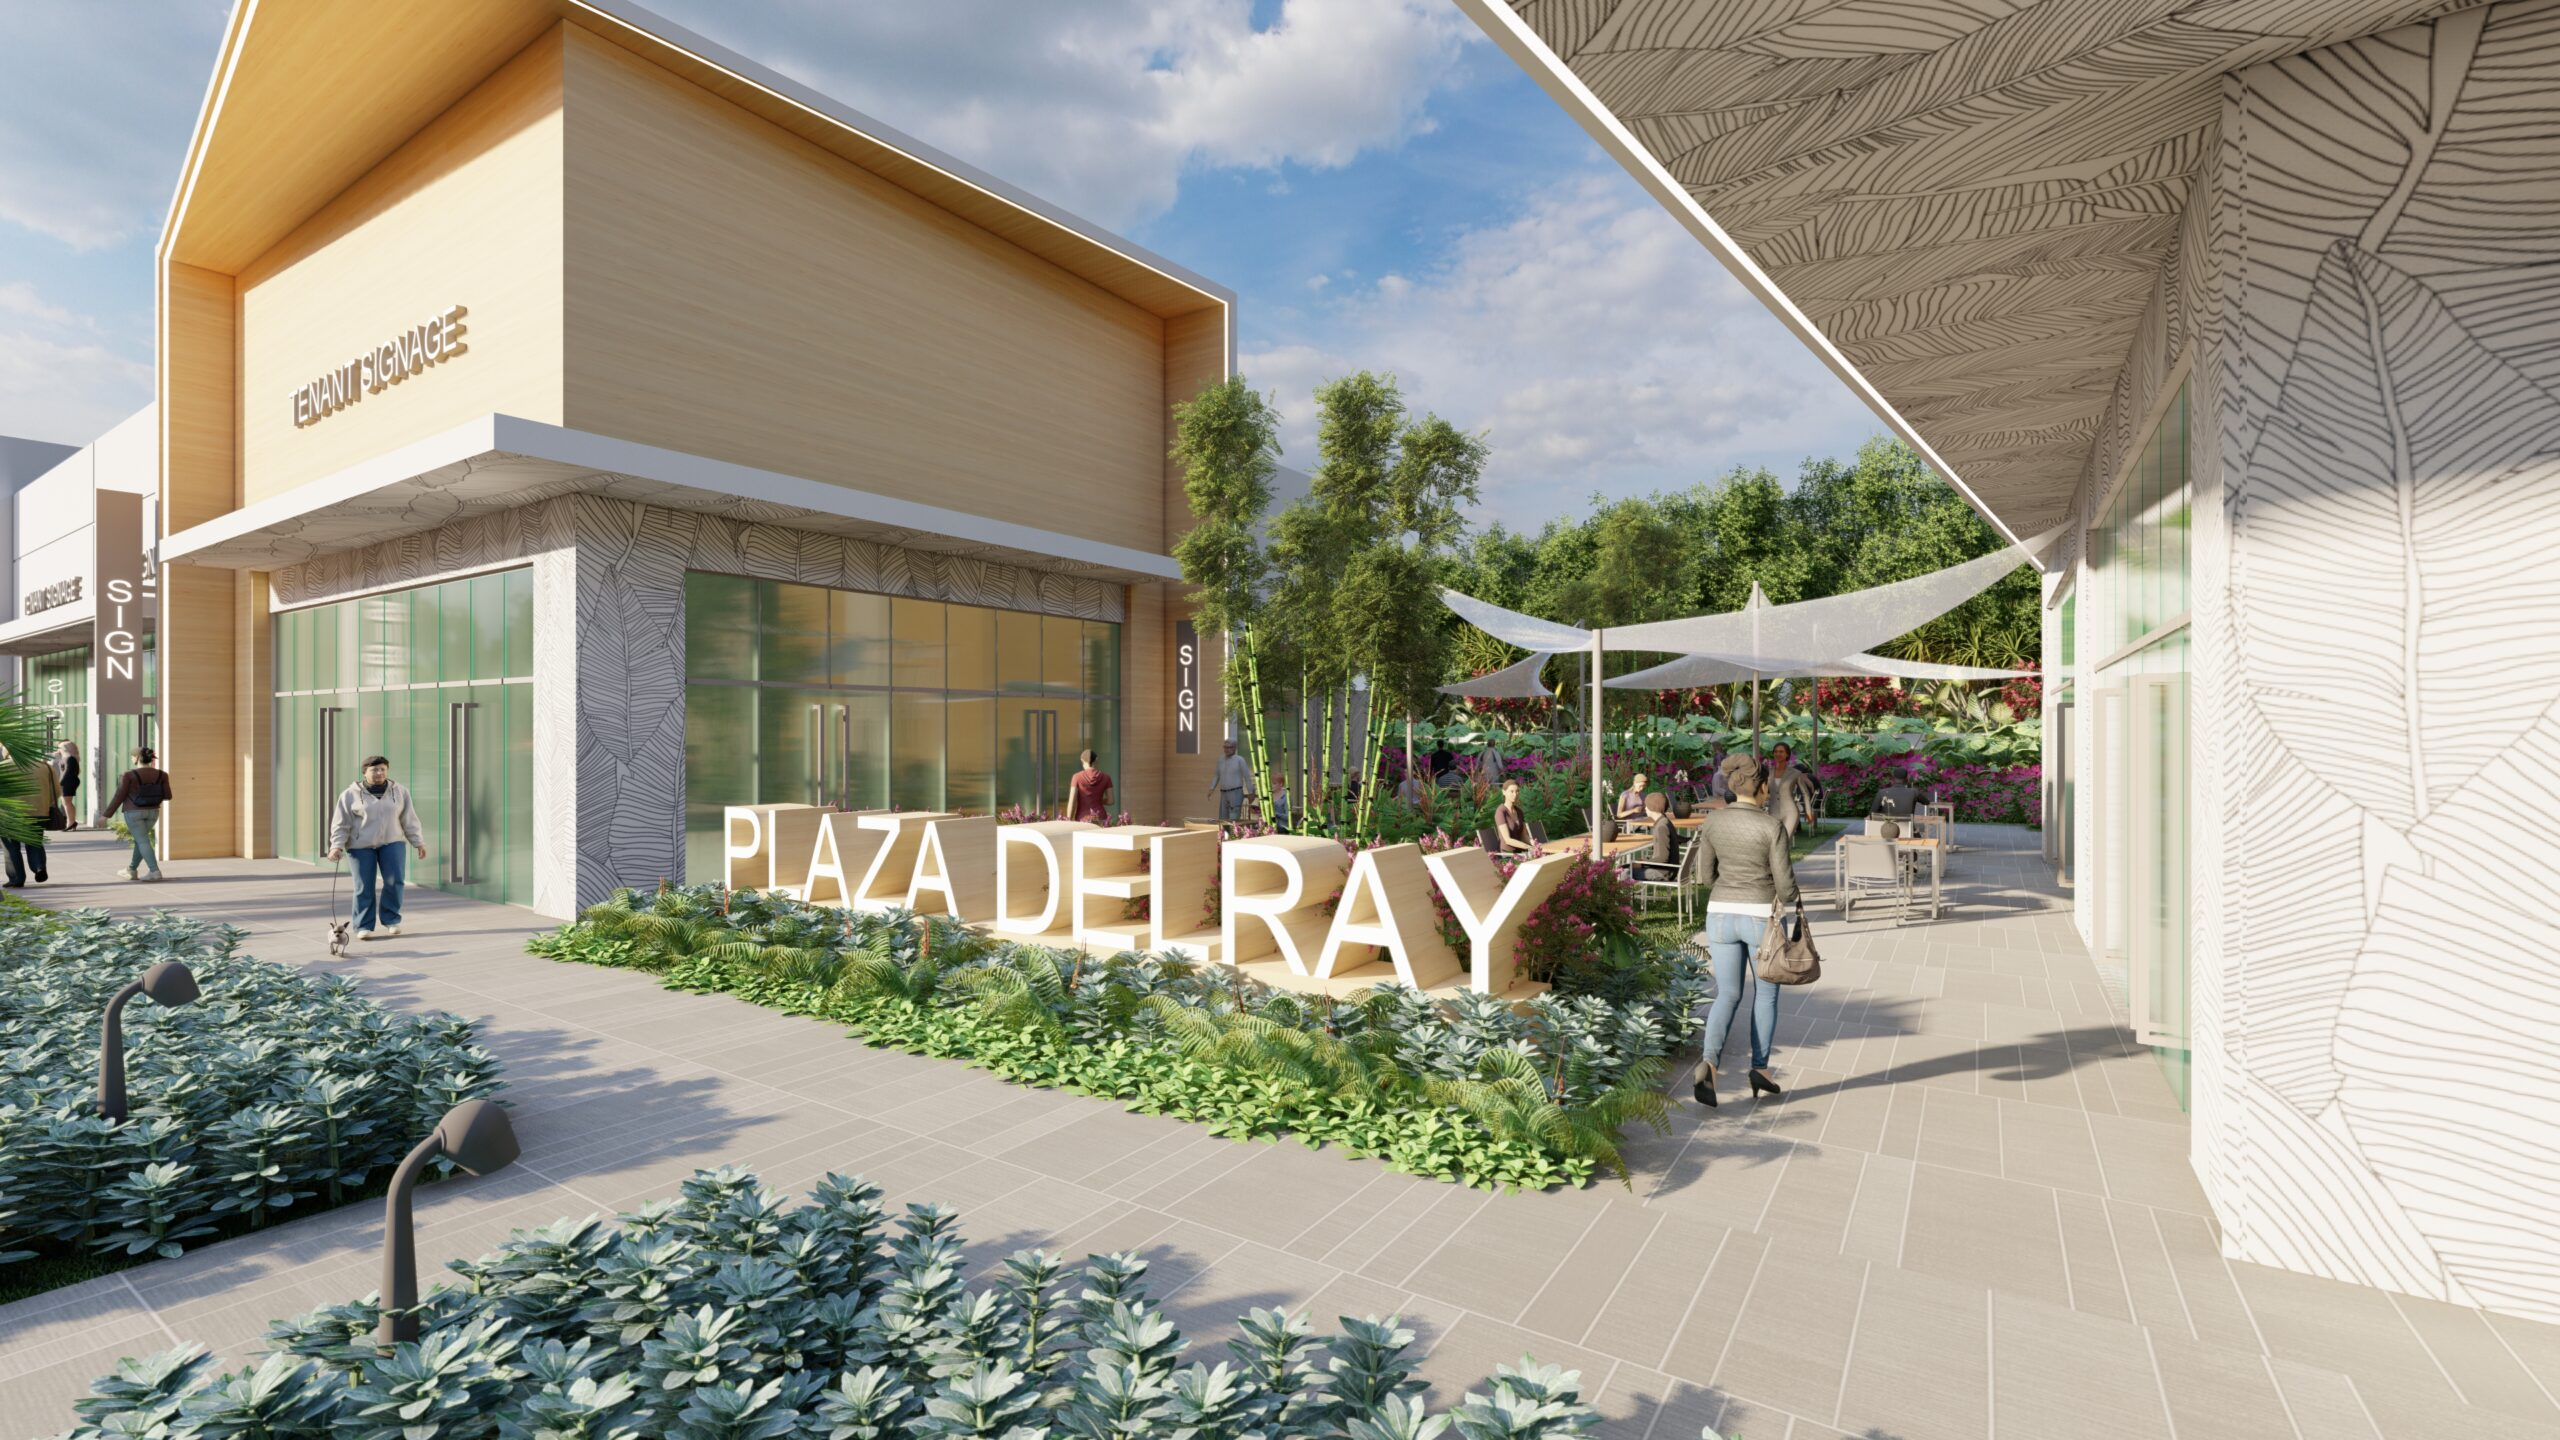 PEBB Enterprises Completes Several New Leases to Bring Plaza Delray to Full Occupancy